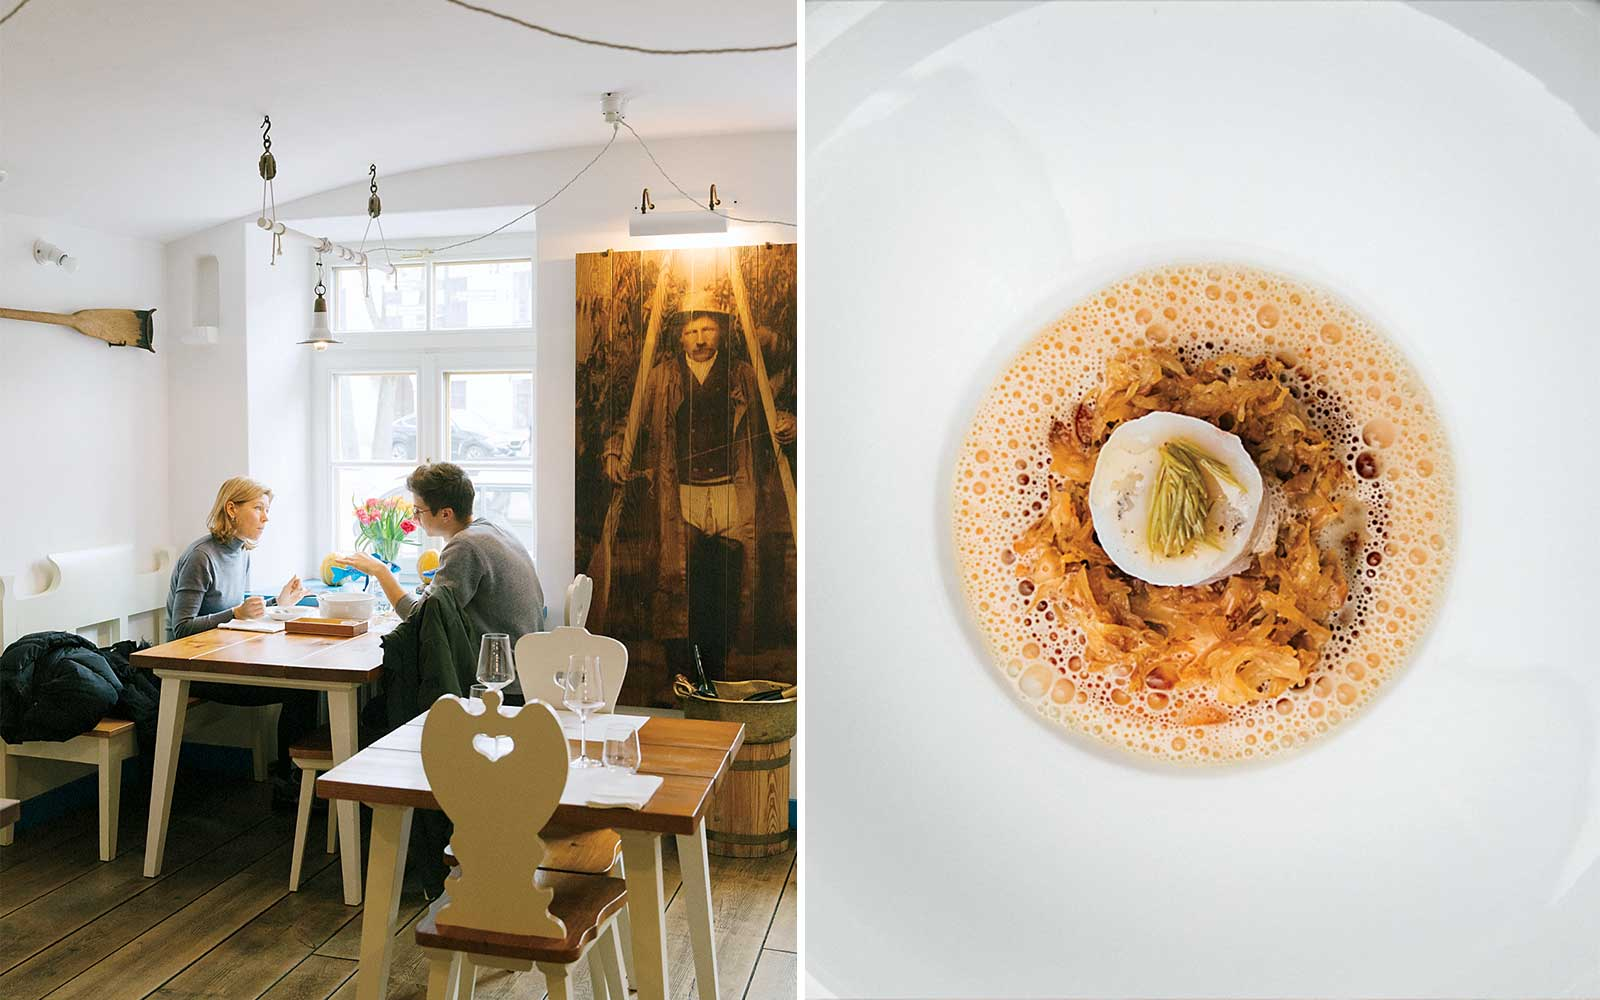 Vilnius, Lithuania's Best Restaurants and Bars: Why Food Lovers Should Plan a Trip